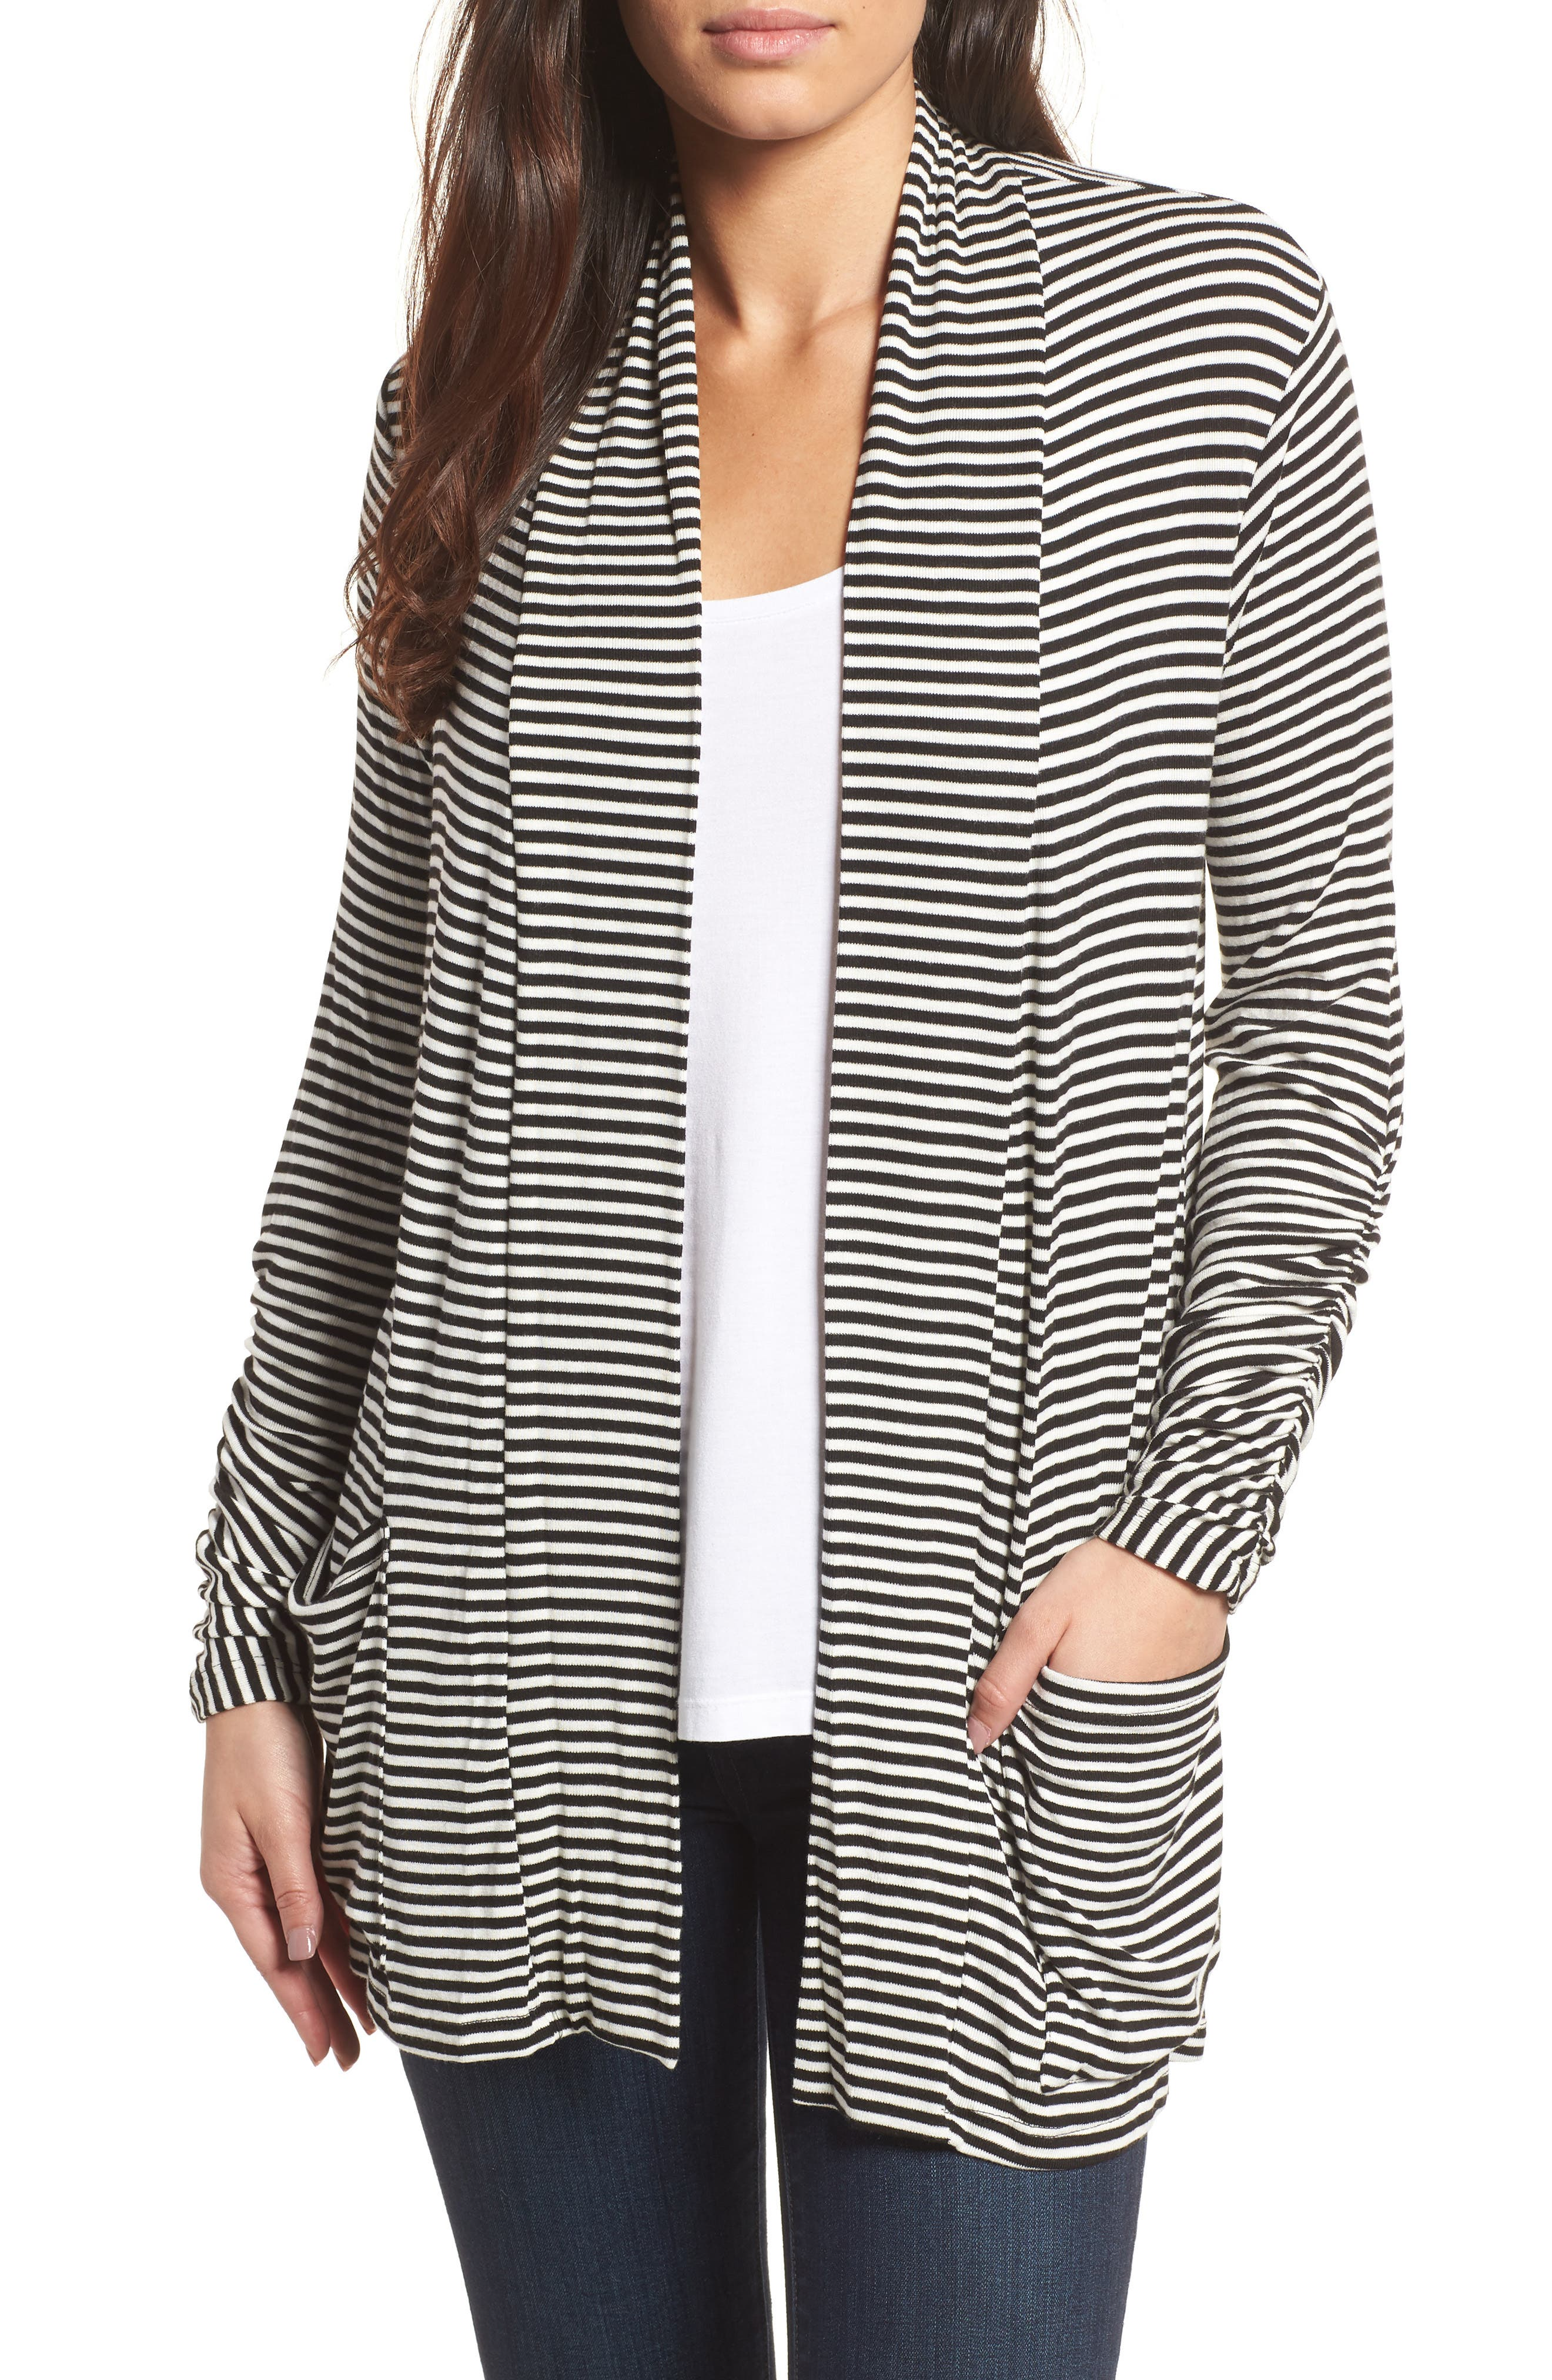 Ruched Sleeve Cardigan,                             Main thumbnail 1, color,                             Black/ White Stripe